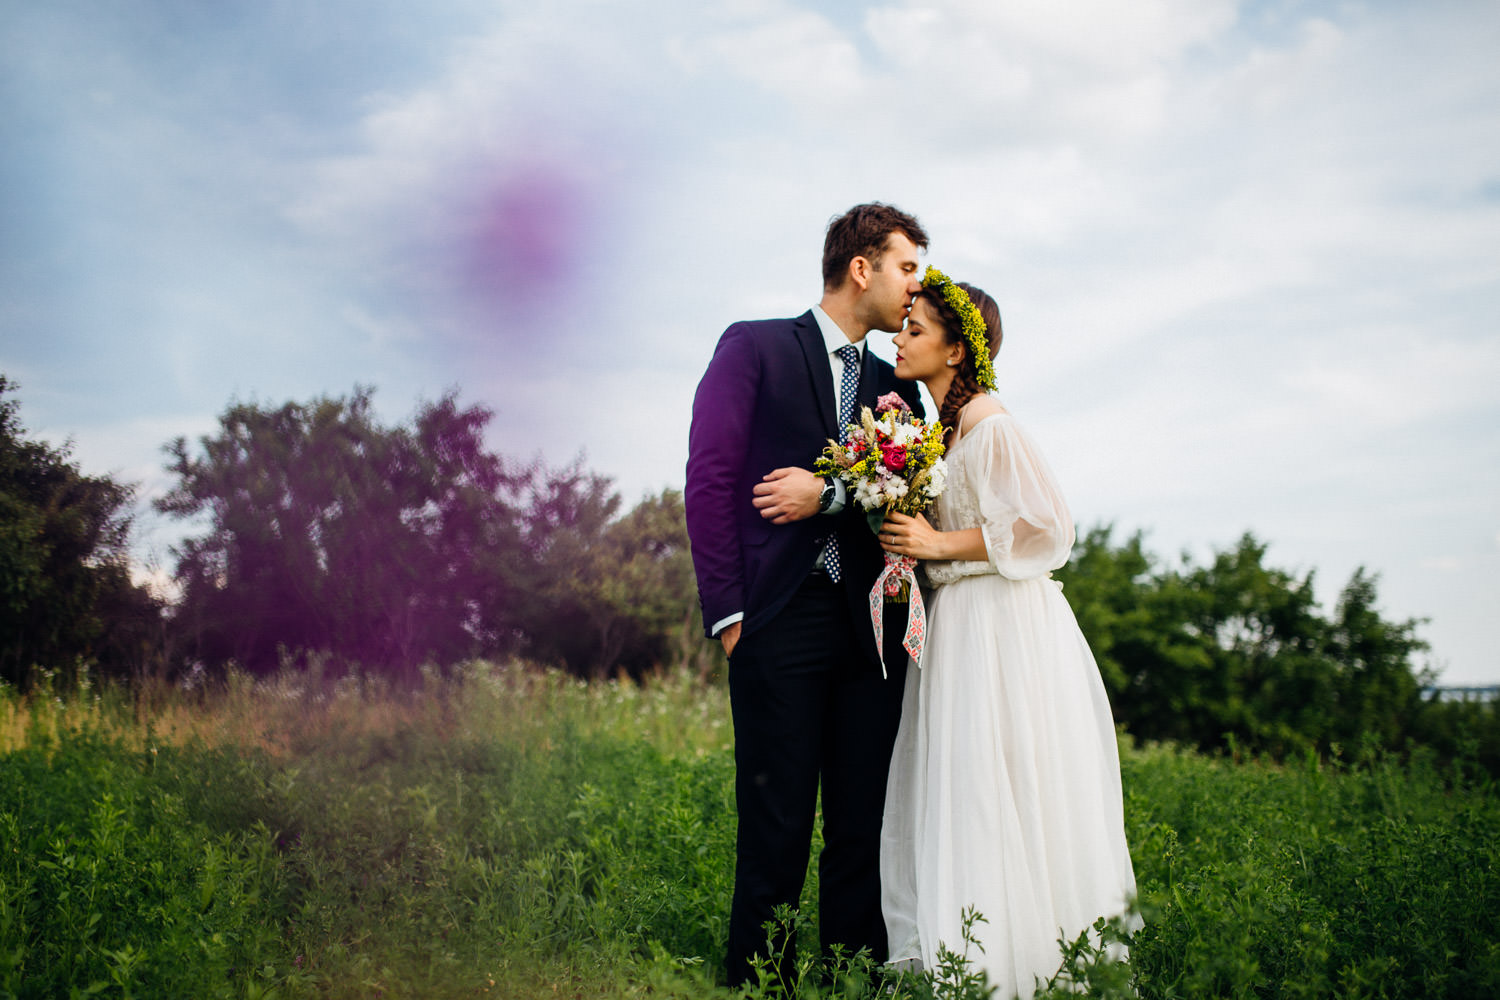 Bogdan & Luiza civil wedding Pitesti-1087